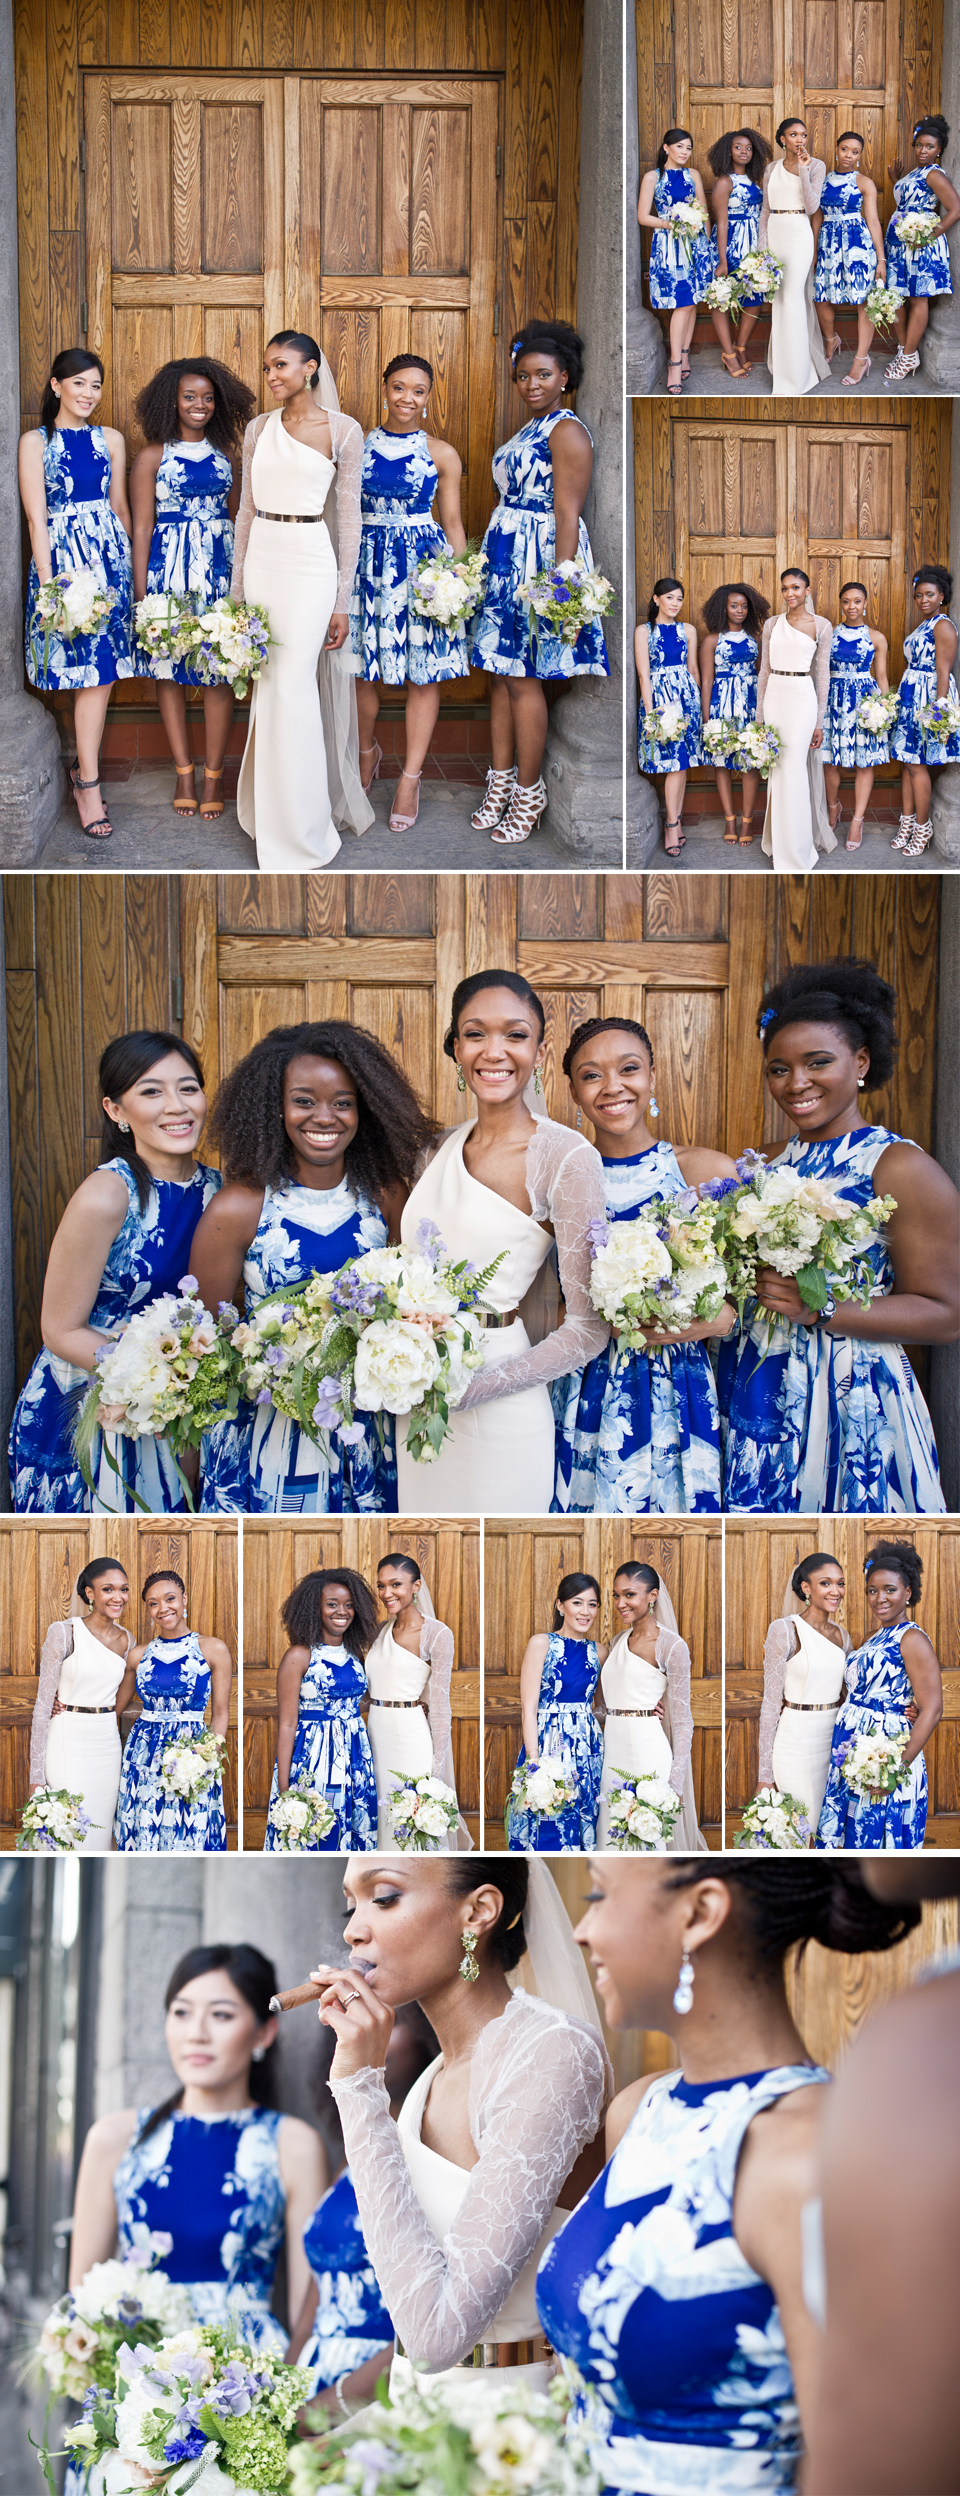 Montreal Wedding Photographer | Bridesmaids | Chateau St. Ambroise | Montreal Quebec | LMP Photography and Videography